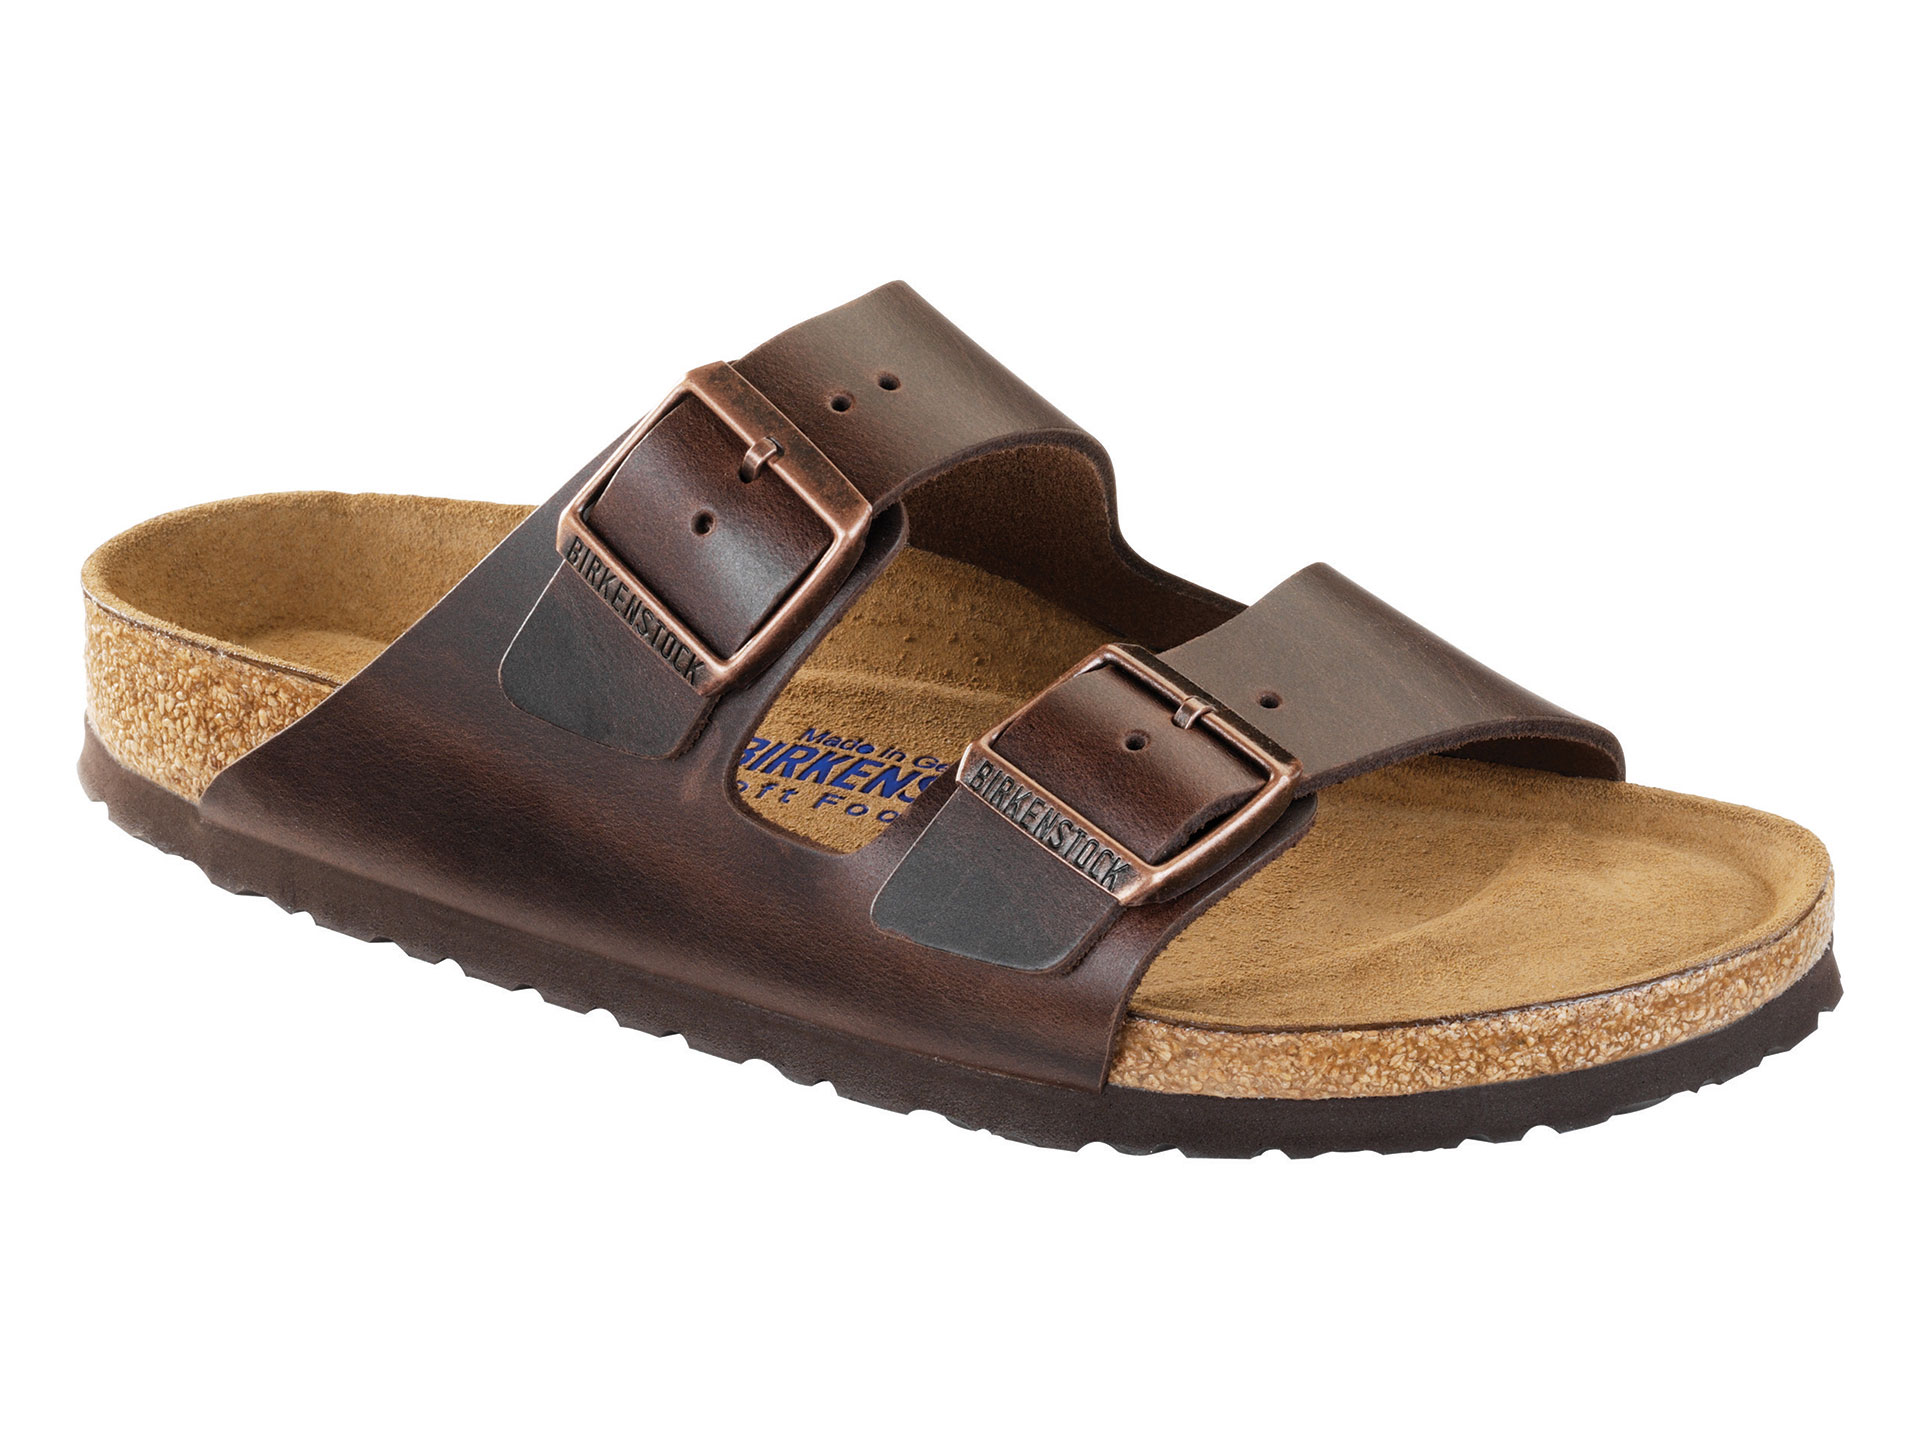 Birkenstock Arizona Soft Footbed Leather Sandals - Brown - 36 Narrow